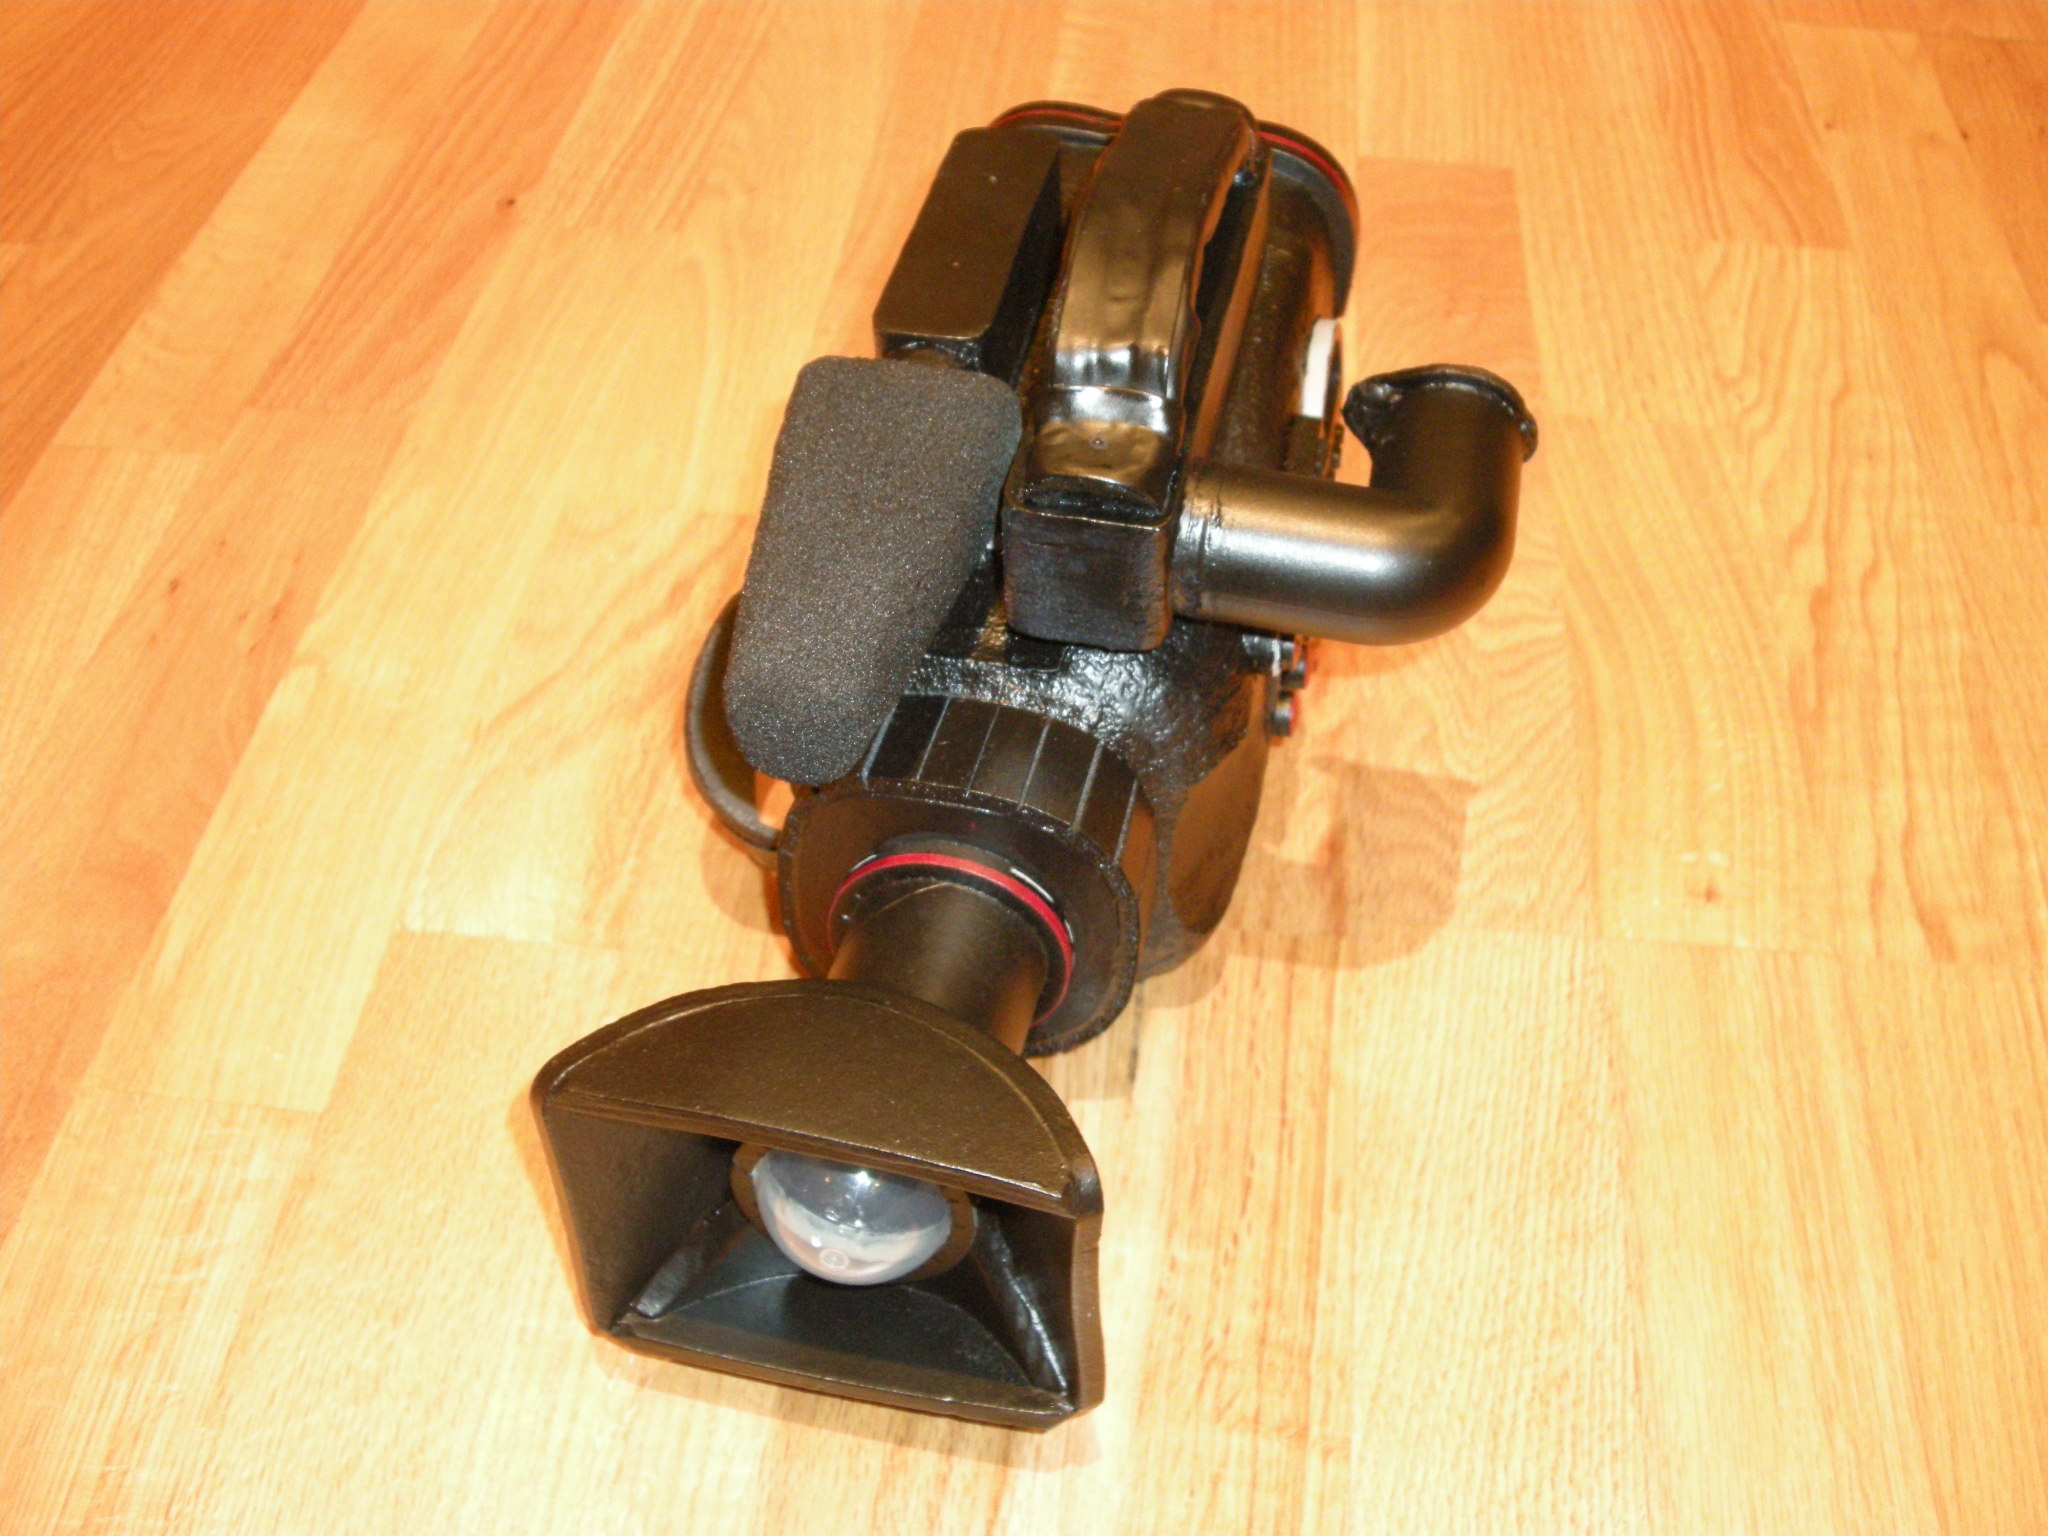 Picture of Broadcasting Camera Prop